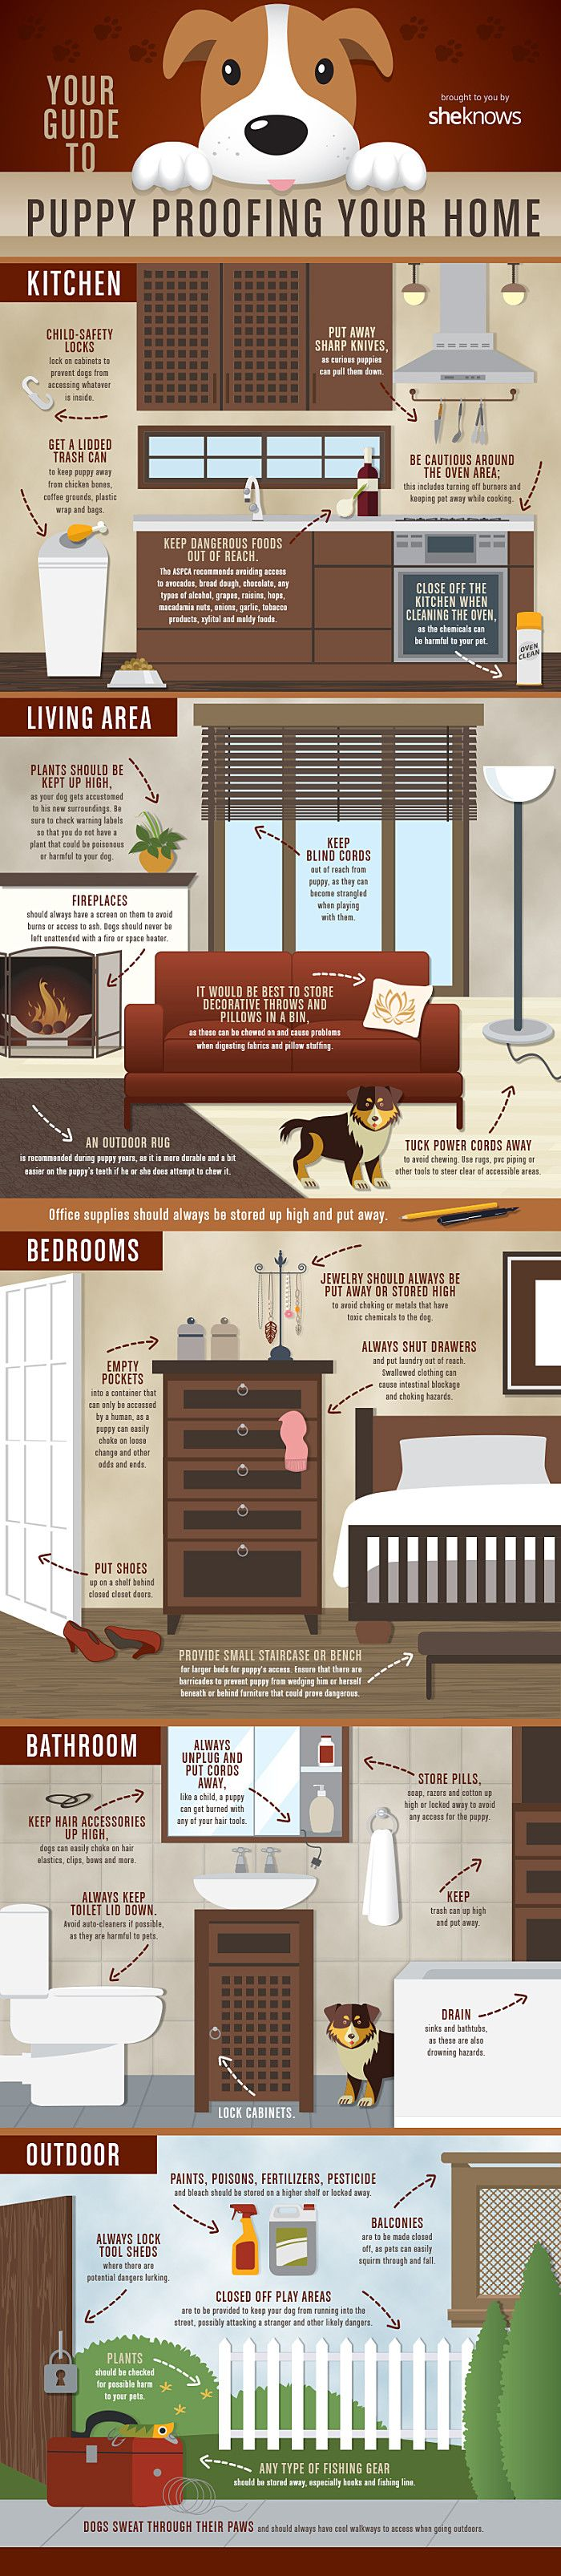 puppy proofing guide